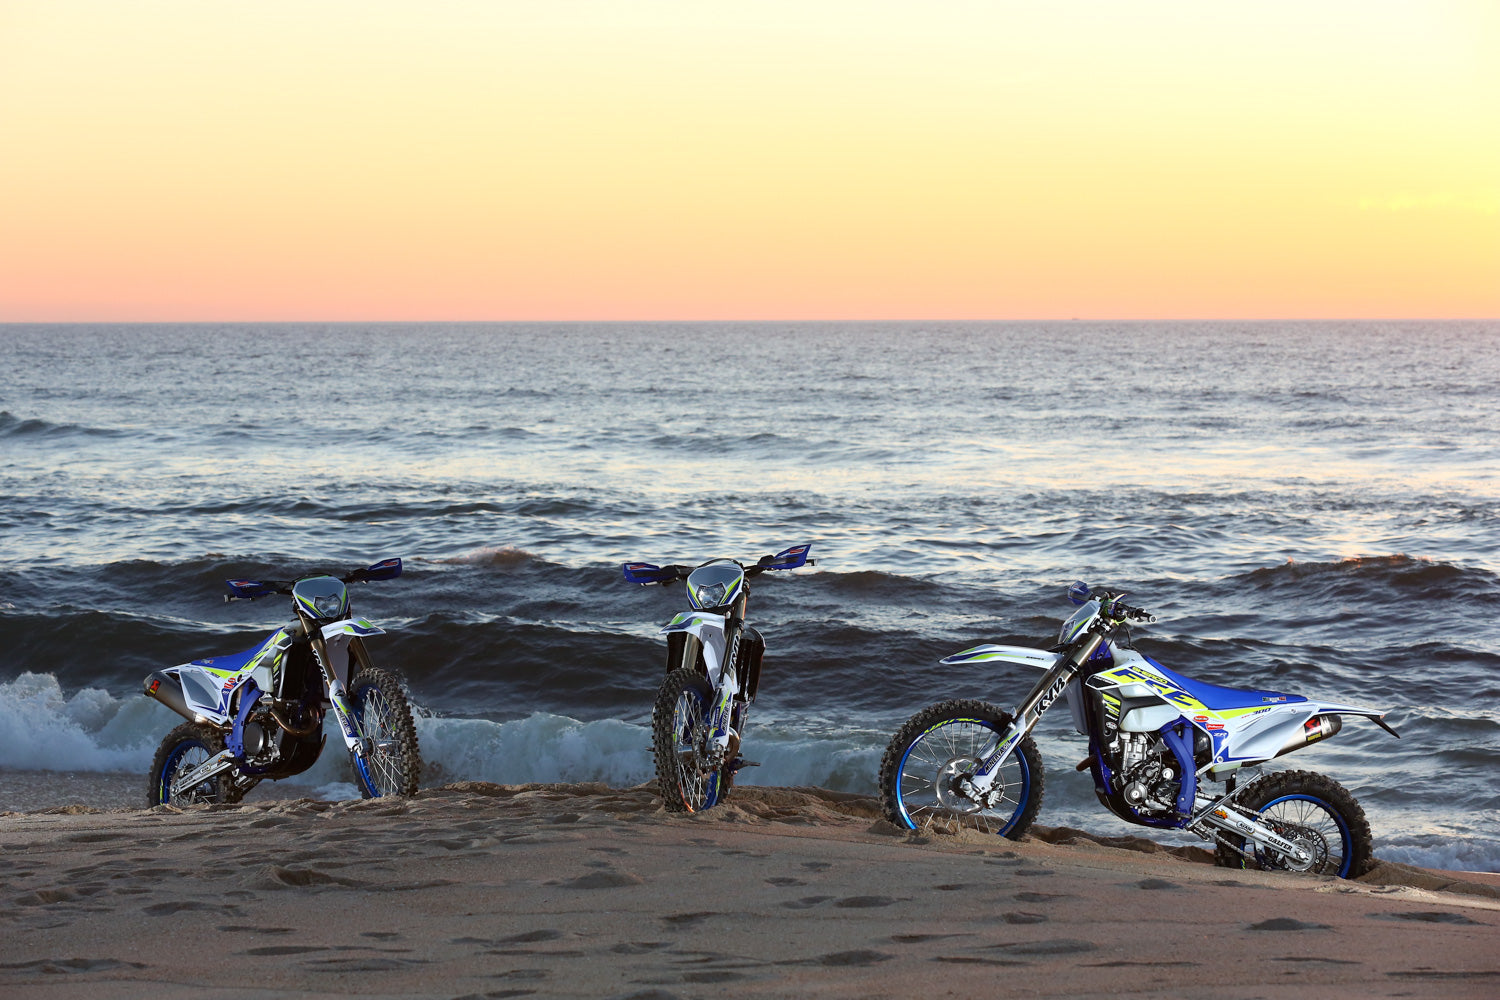 Sherco on the beach